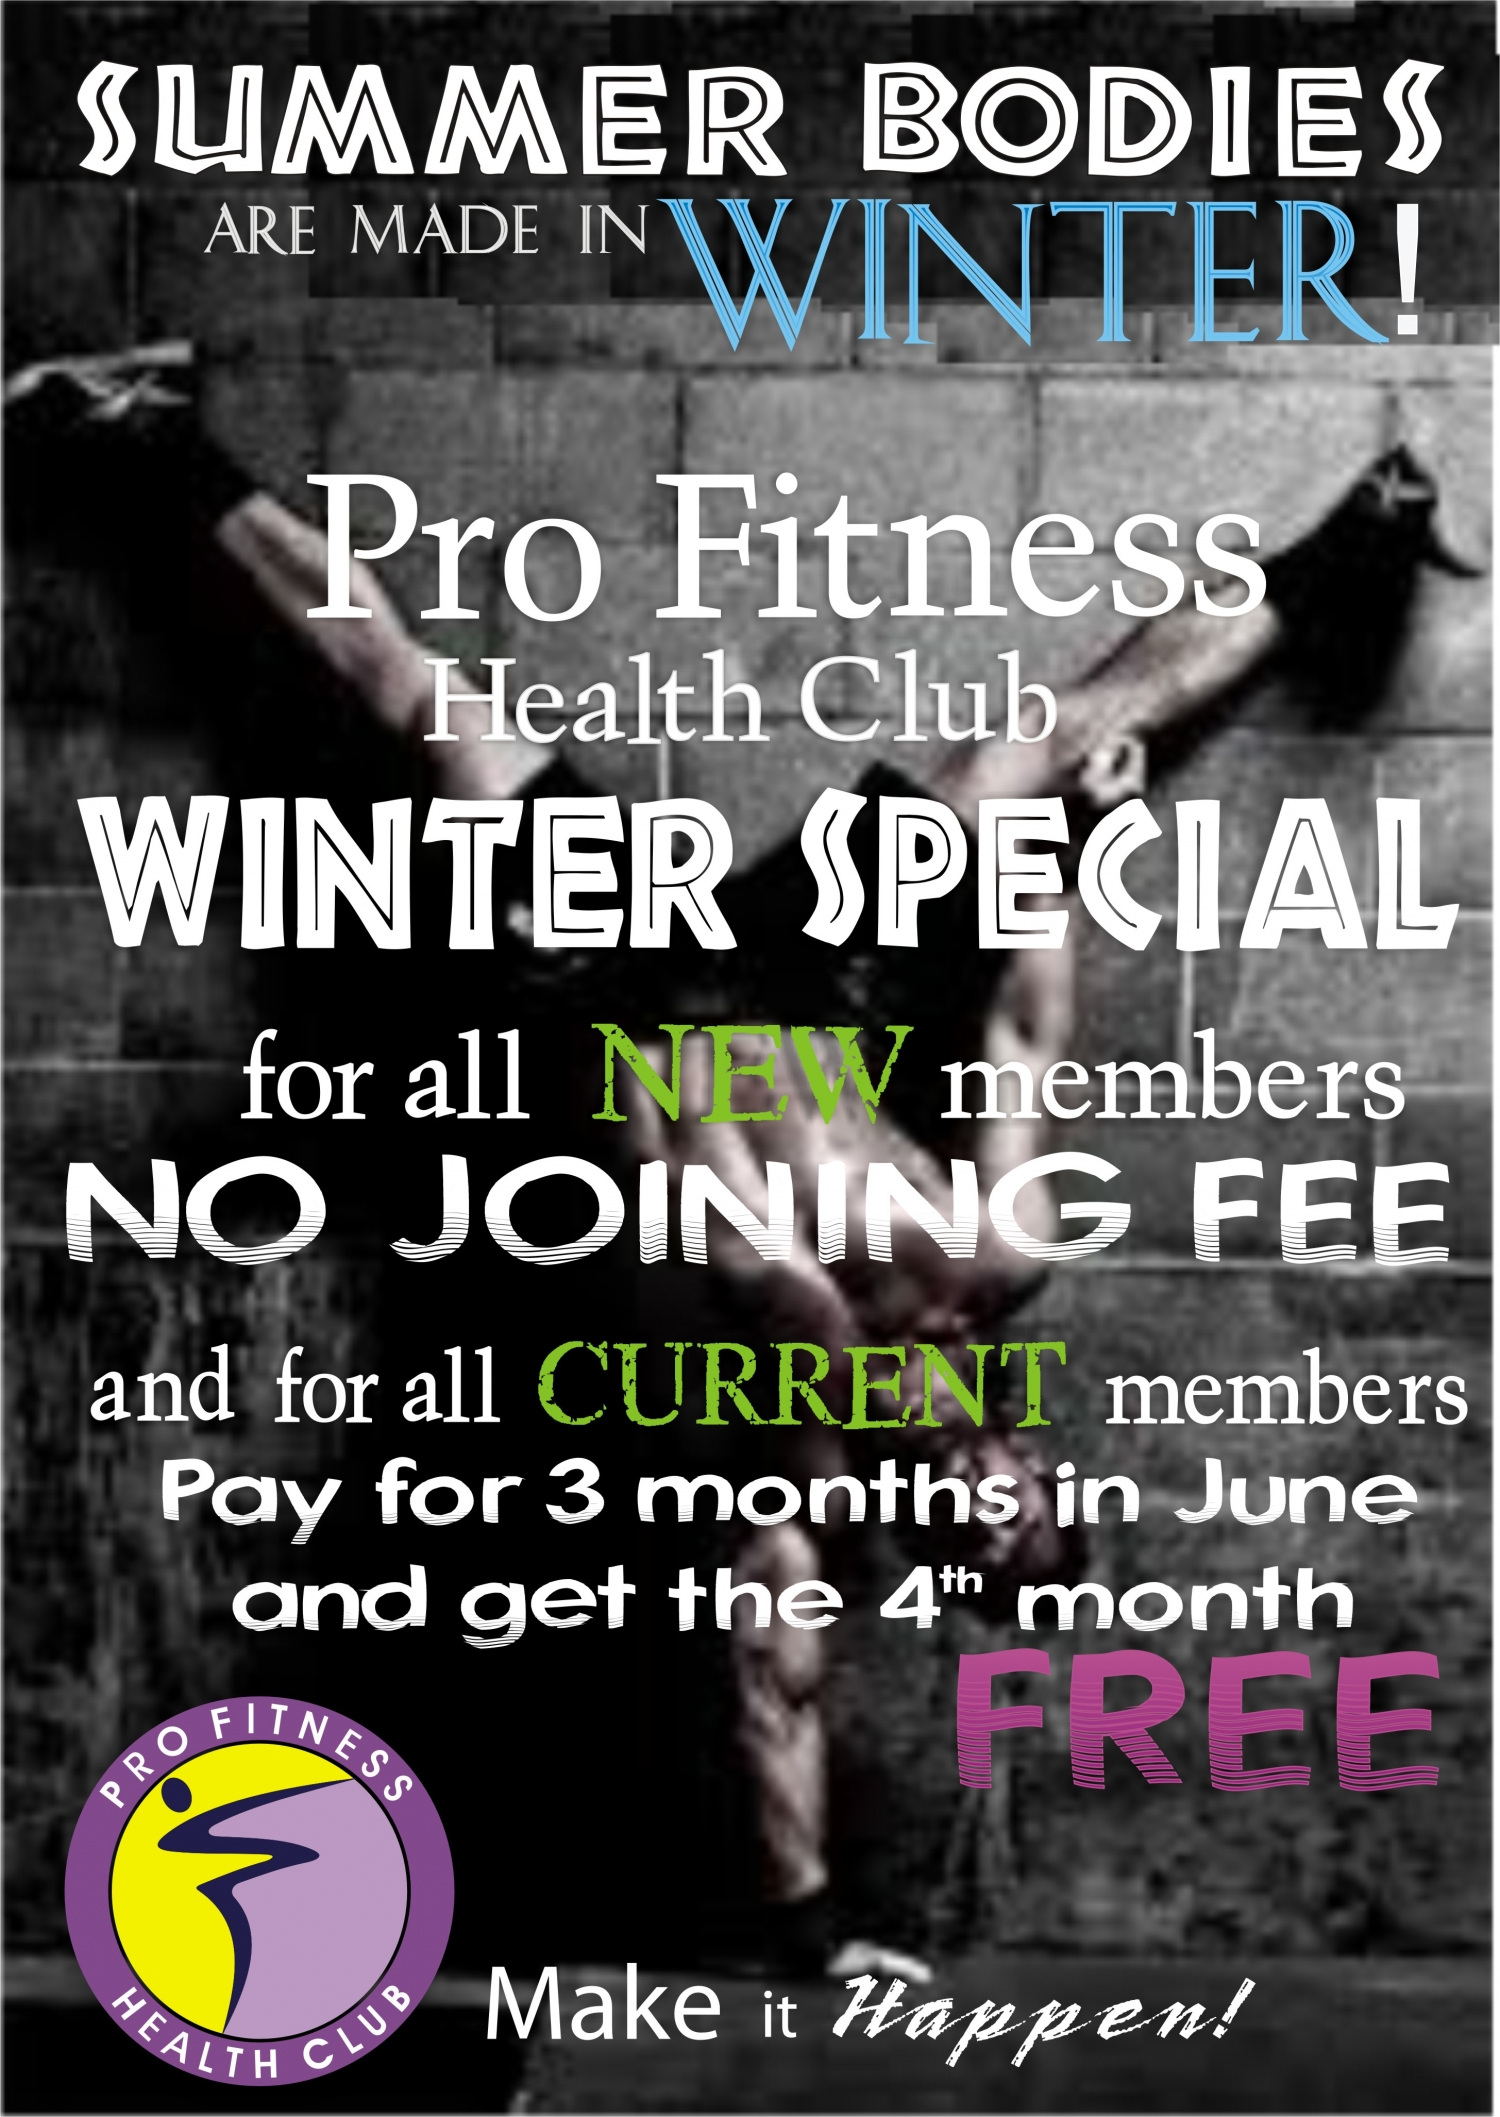 Pro Fitness Health Club Winter Special